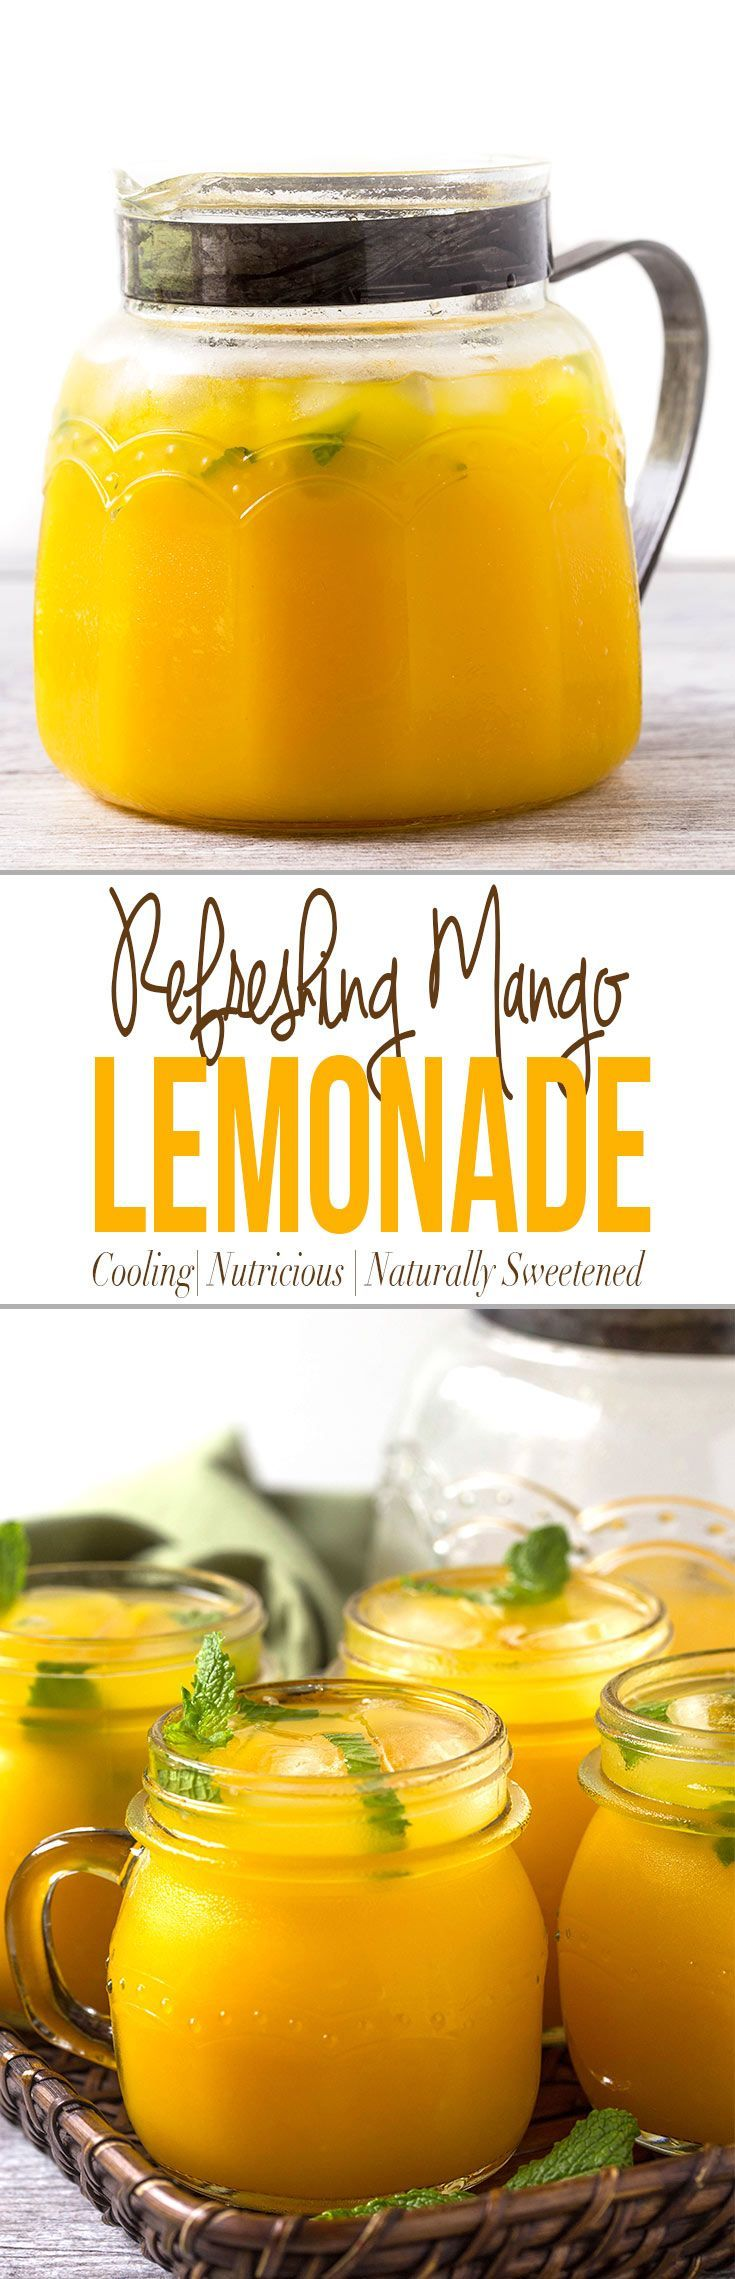 Refreshing mango lemonade to enjoy hot summer days. Prepared using fresh zesty lemon juice, honey, & mango pulp. Healthy, delicious & naturally sweetened fresh lemonade via @watchwhatueat